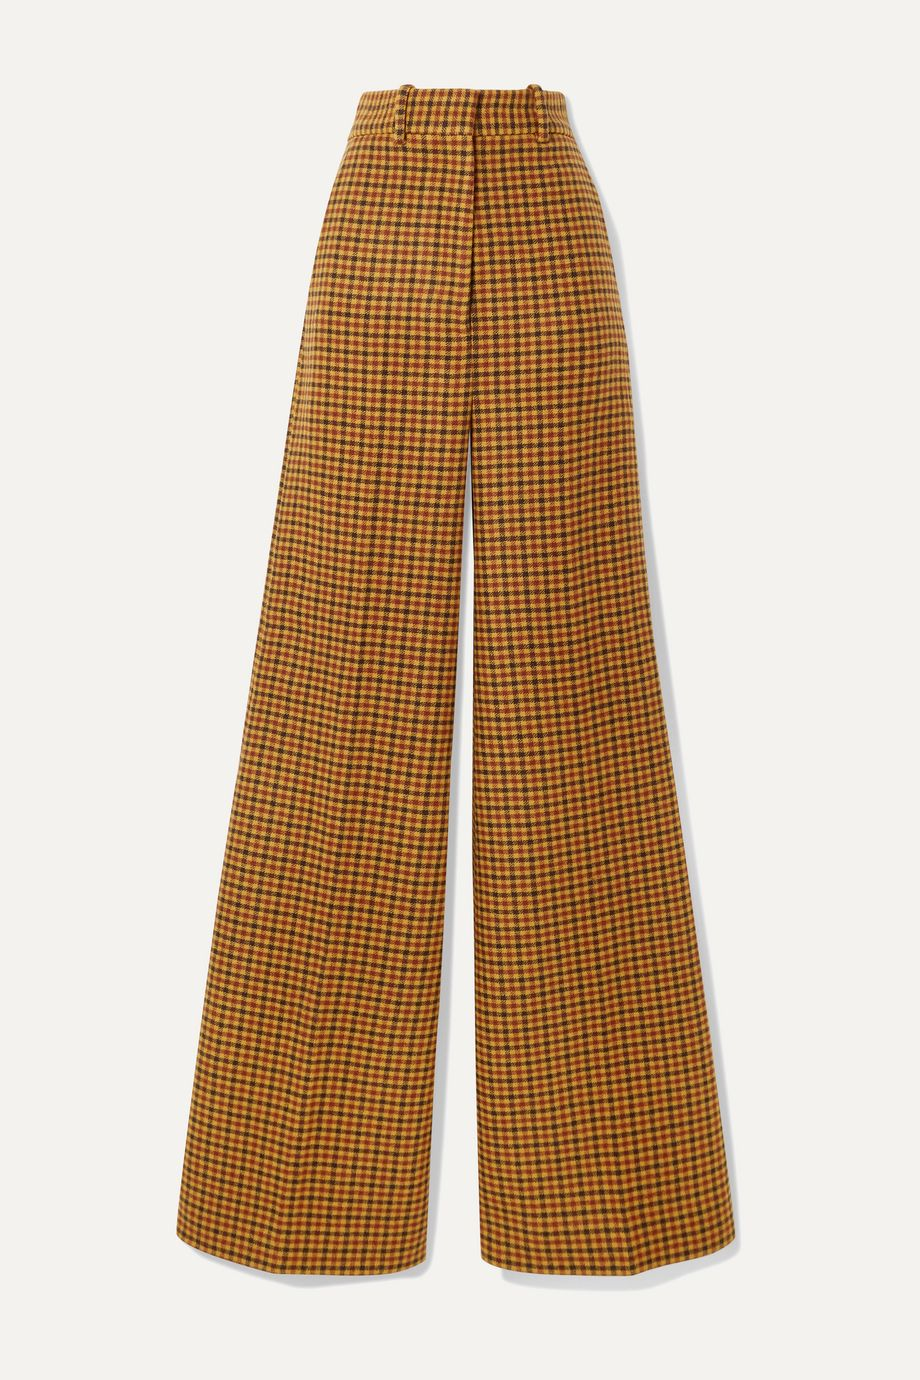 Khaite Bernadette checked wool wide-leg pants